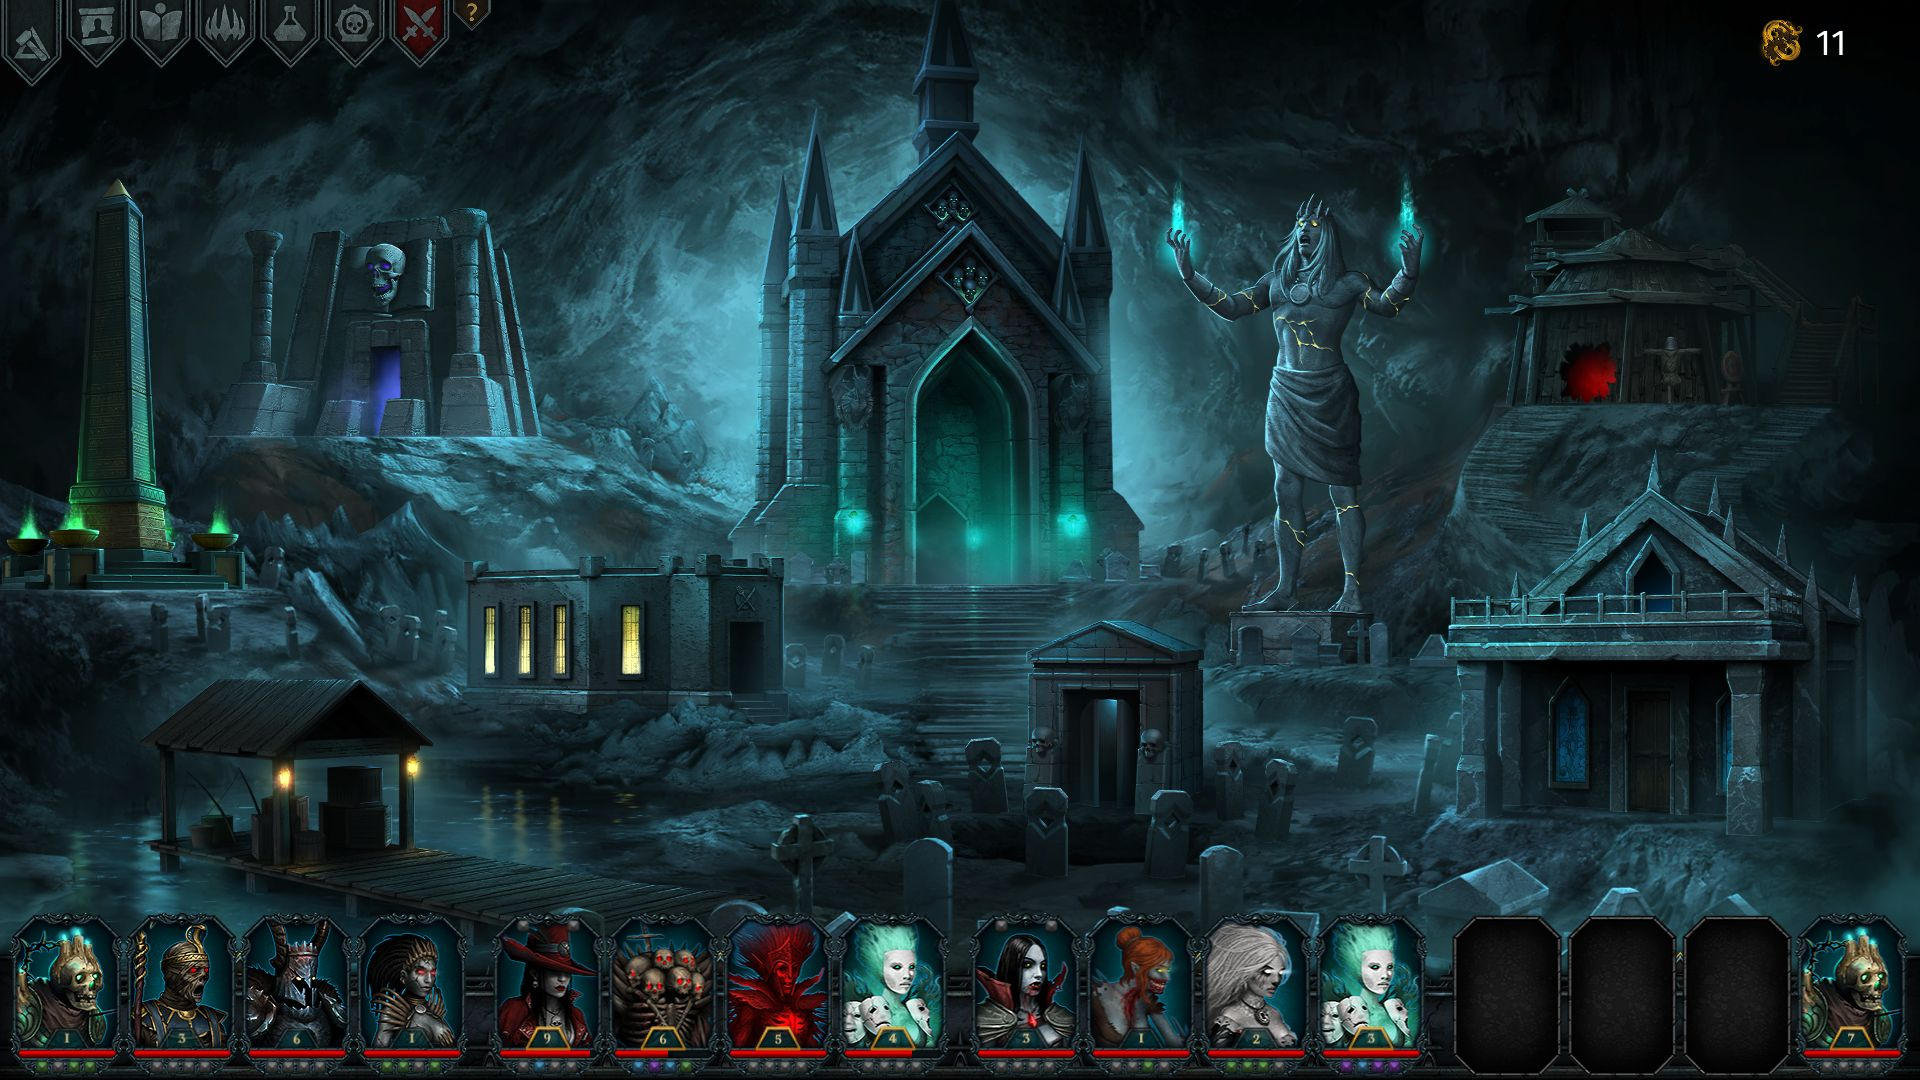 Screenshot from Iratus: Lord of the Dead (2/8)